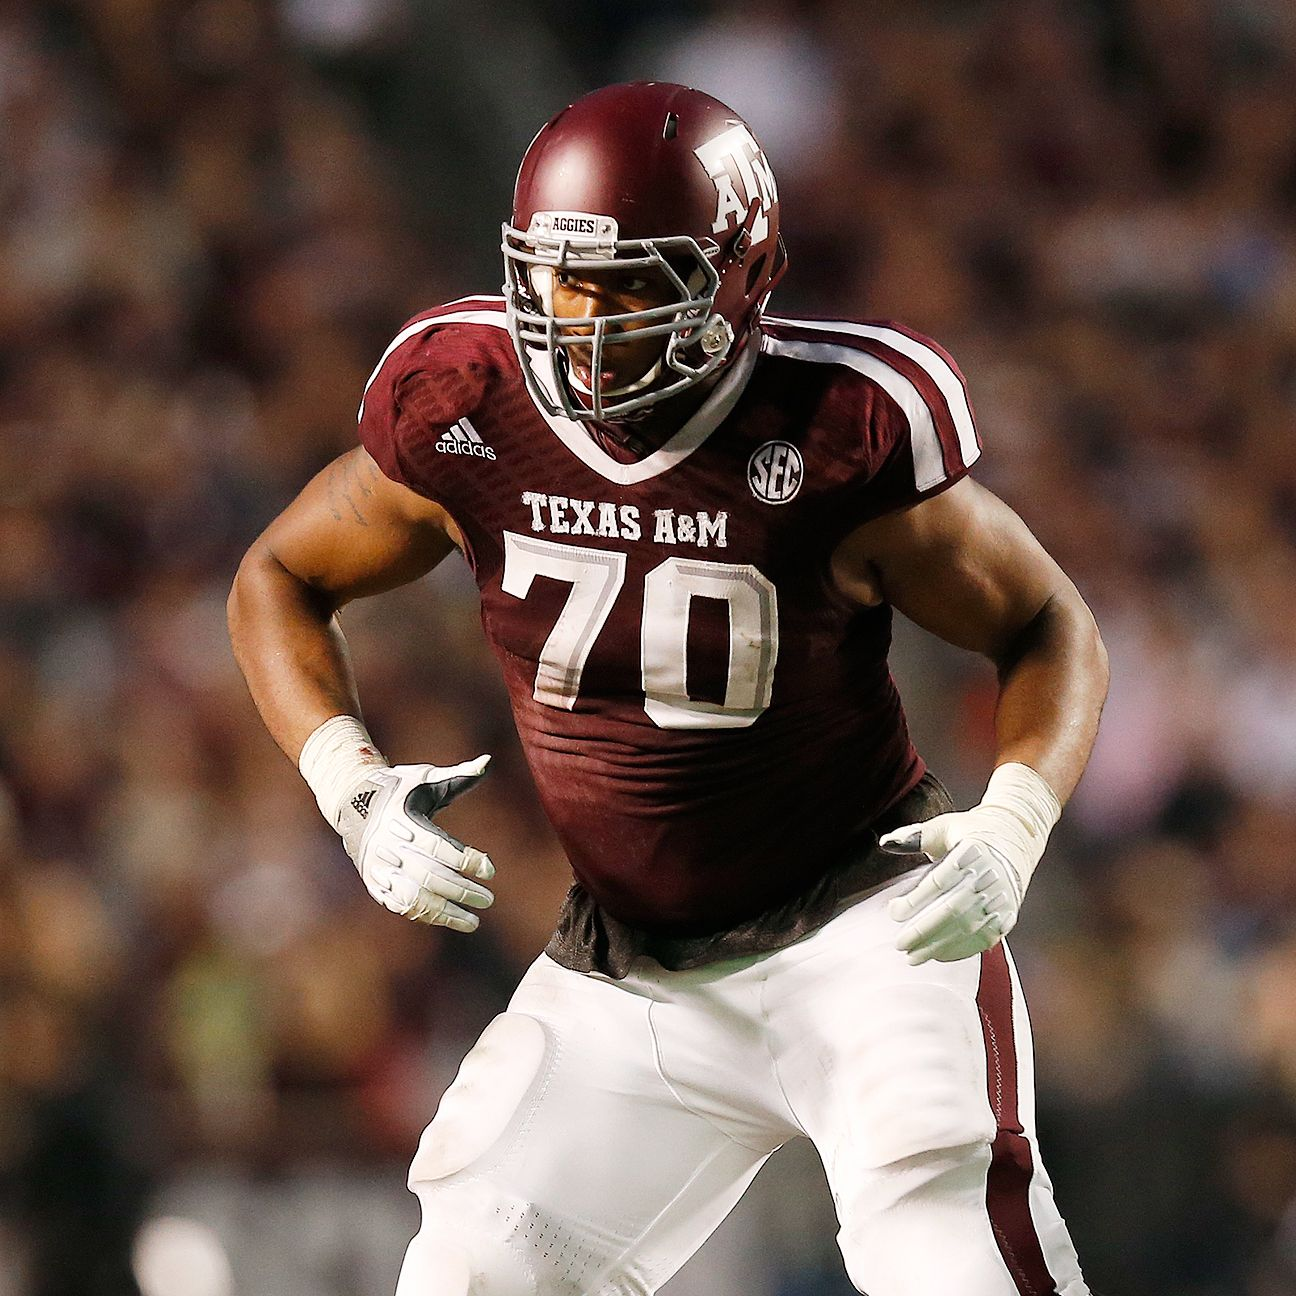 Sam Whitelock Breaks A Tackle: Texas A&M Aggies Position Battles To Watch: Right Tackle